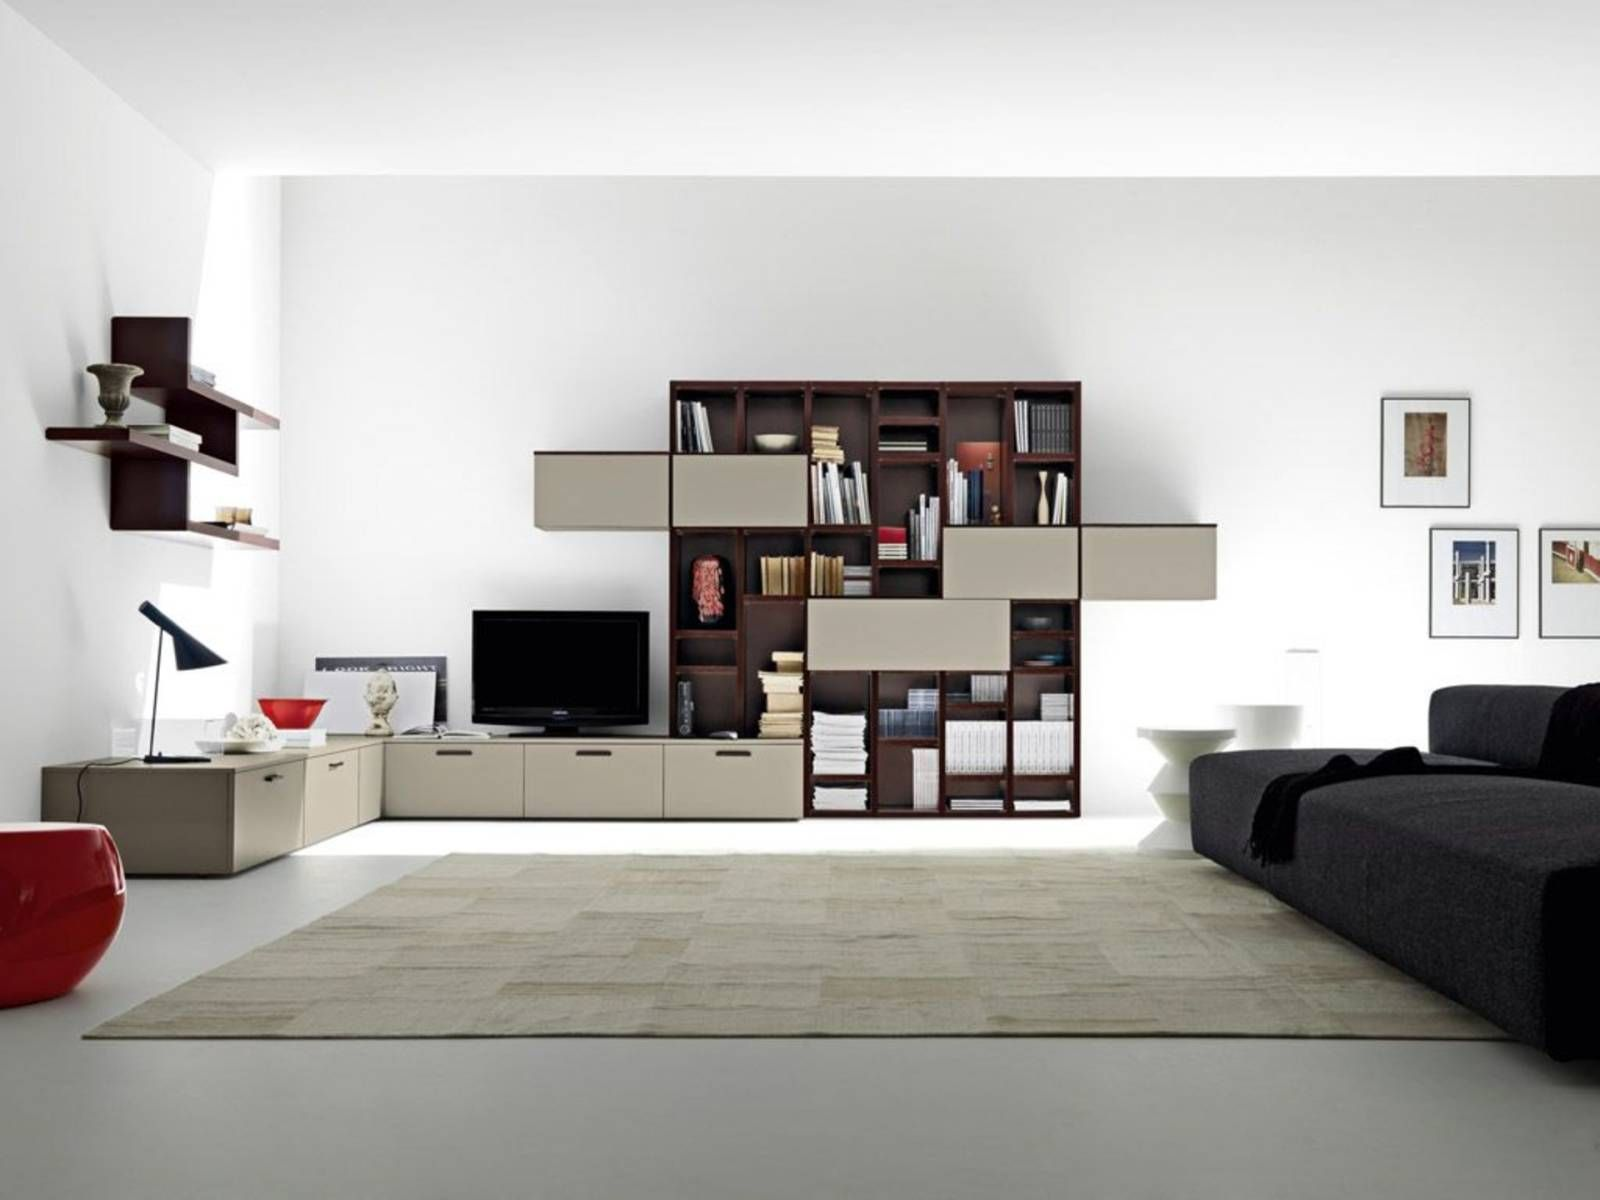 Furniture Minimalist Decorating And Open Living Space That Draws ...